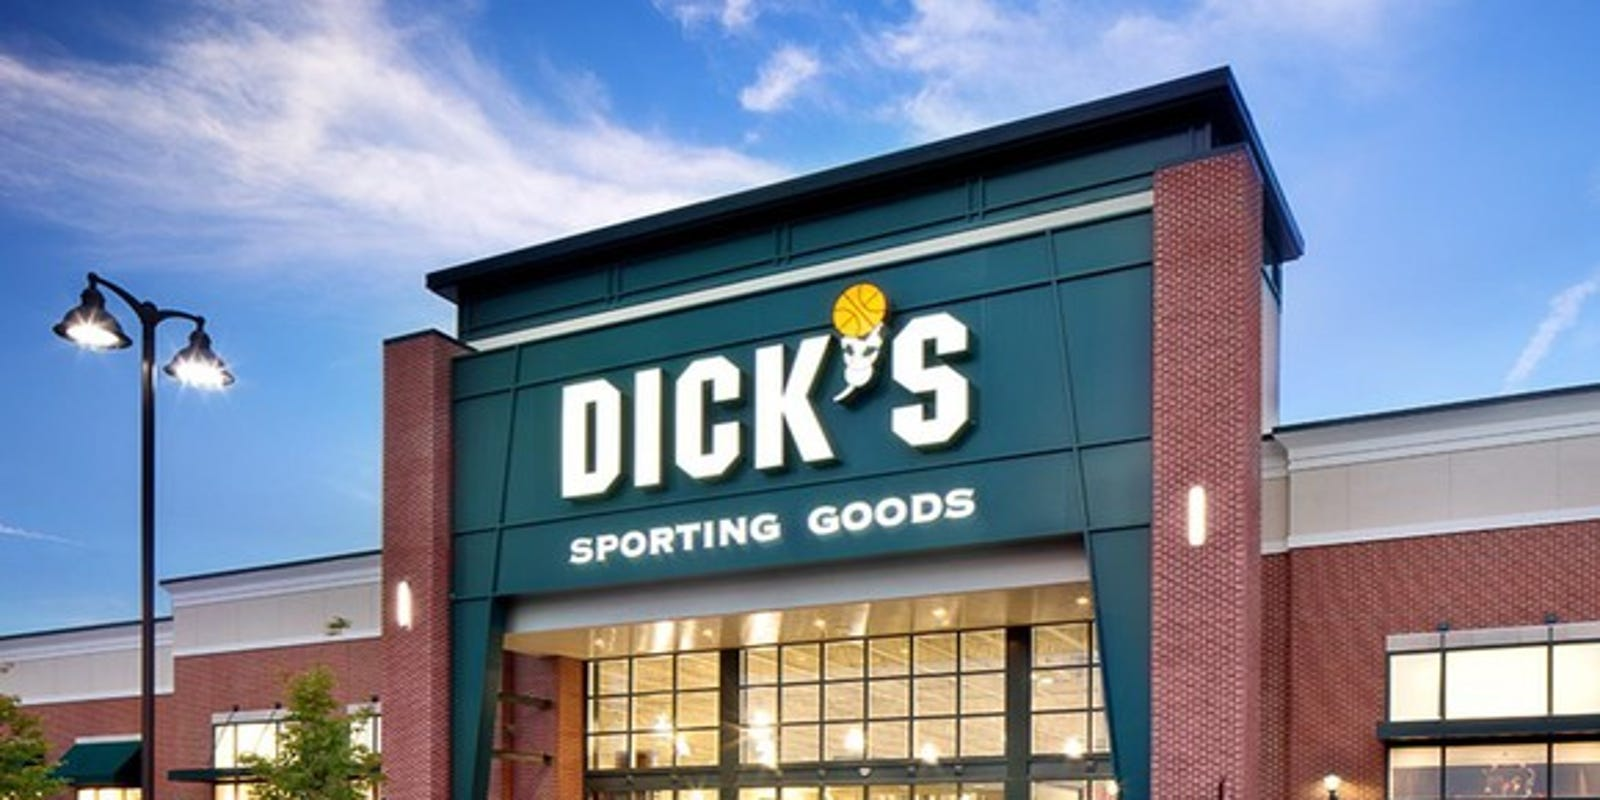 Dick's Sporting Goods destroyed $5 million worth of assault rifles, CEO Ed Stack says